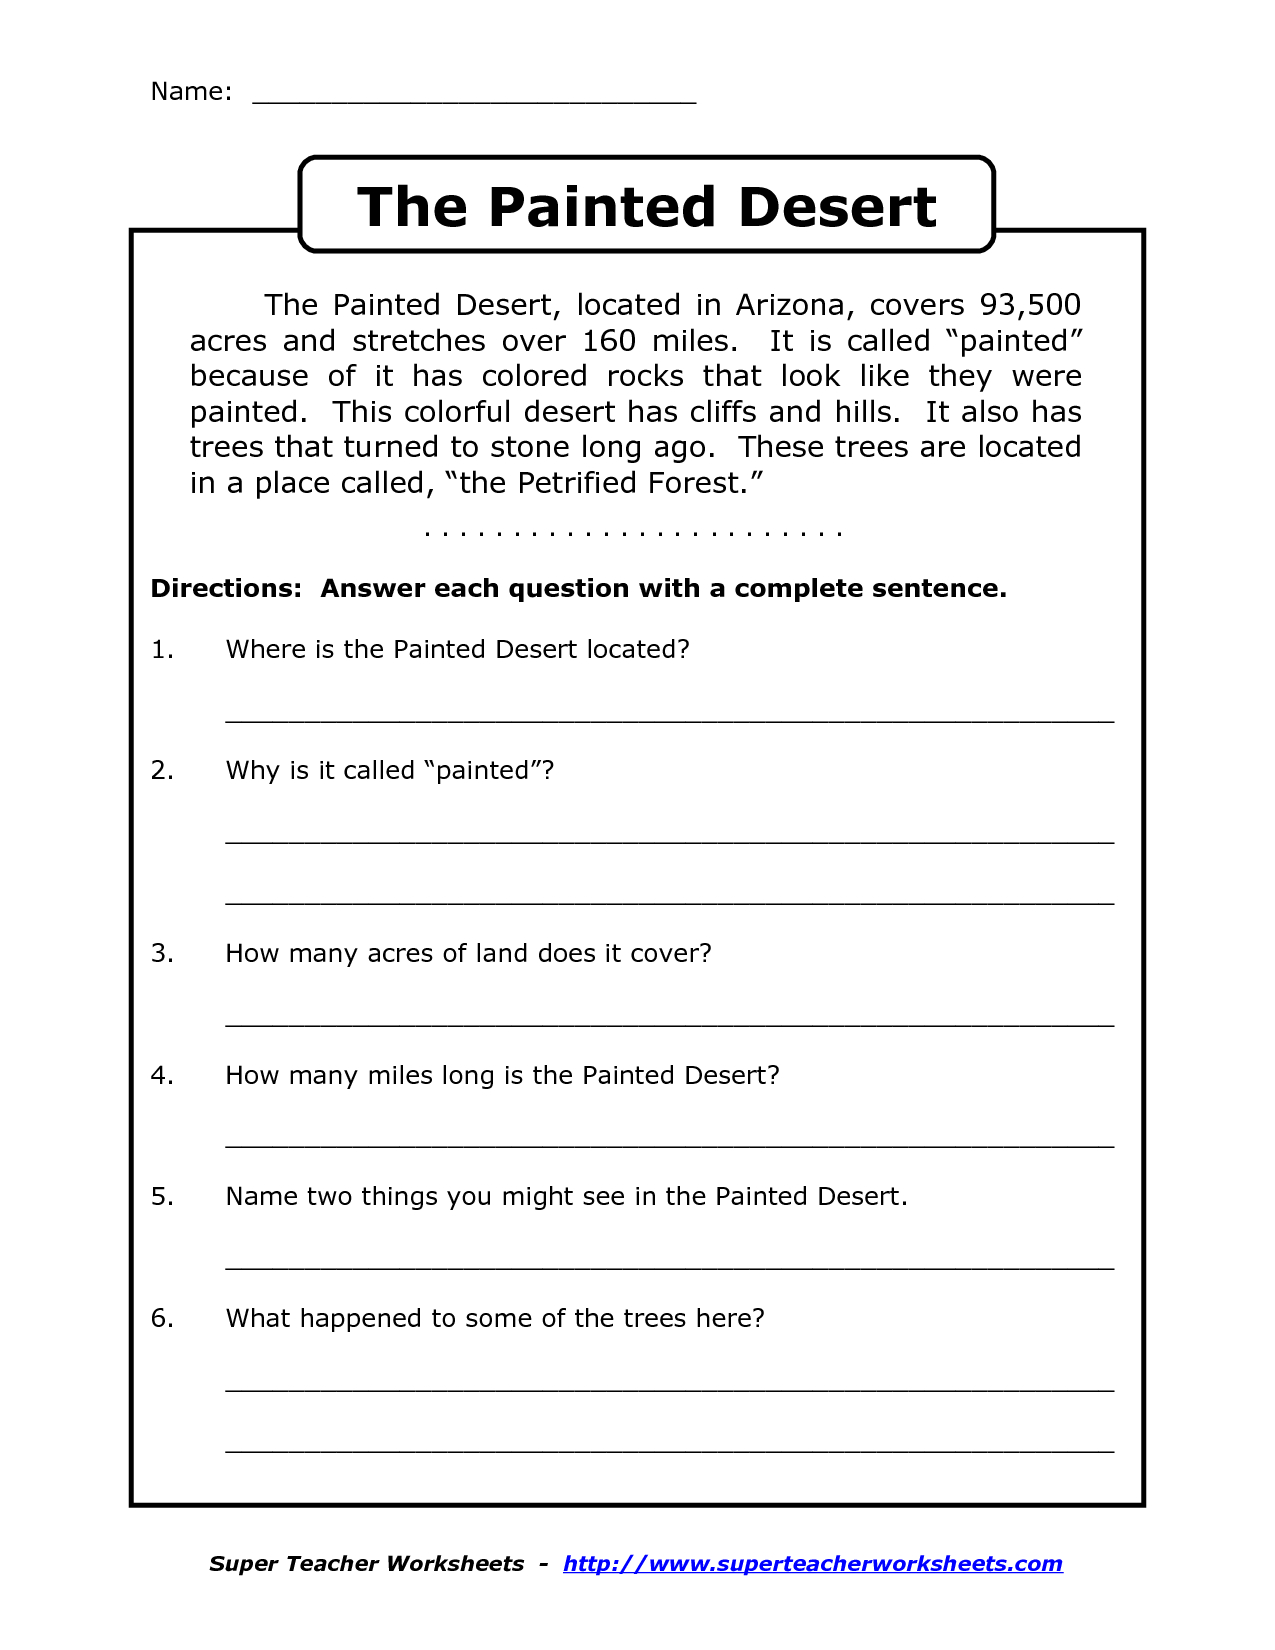 Reading Worksheets For 4Th Grade | Reading Comprehension Worksheets - Free Printable Comprehension Worksheets For Grade 5